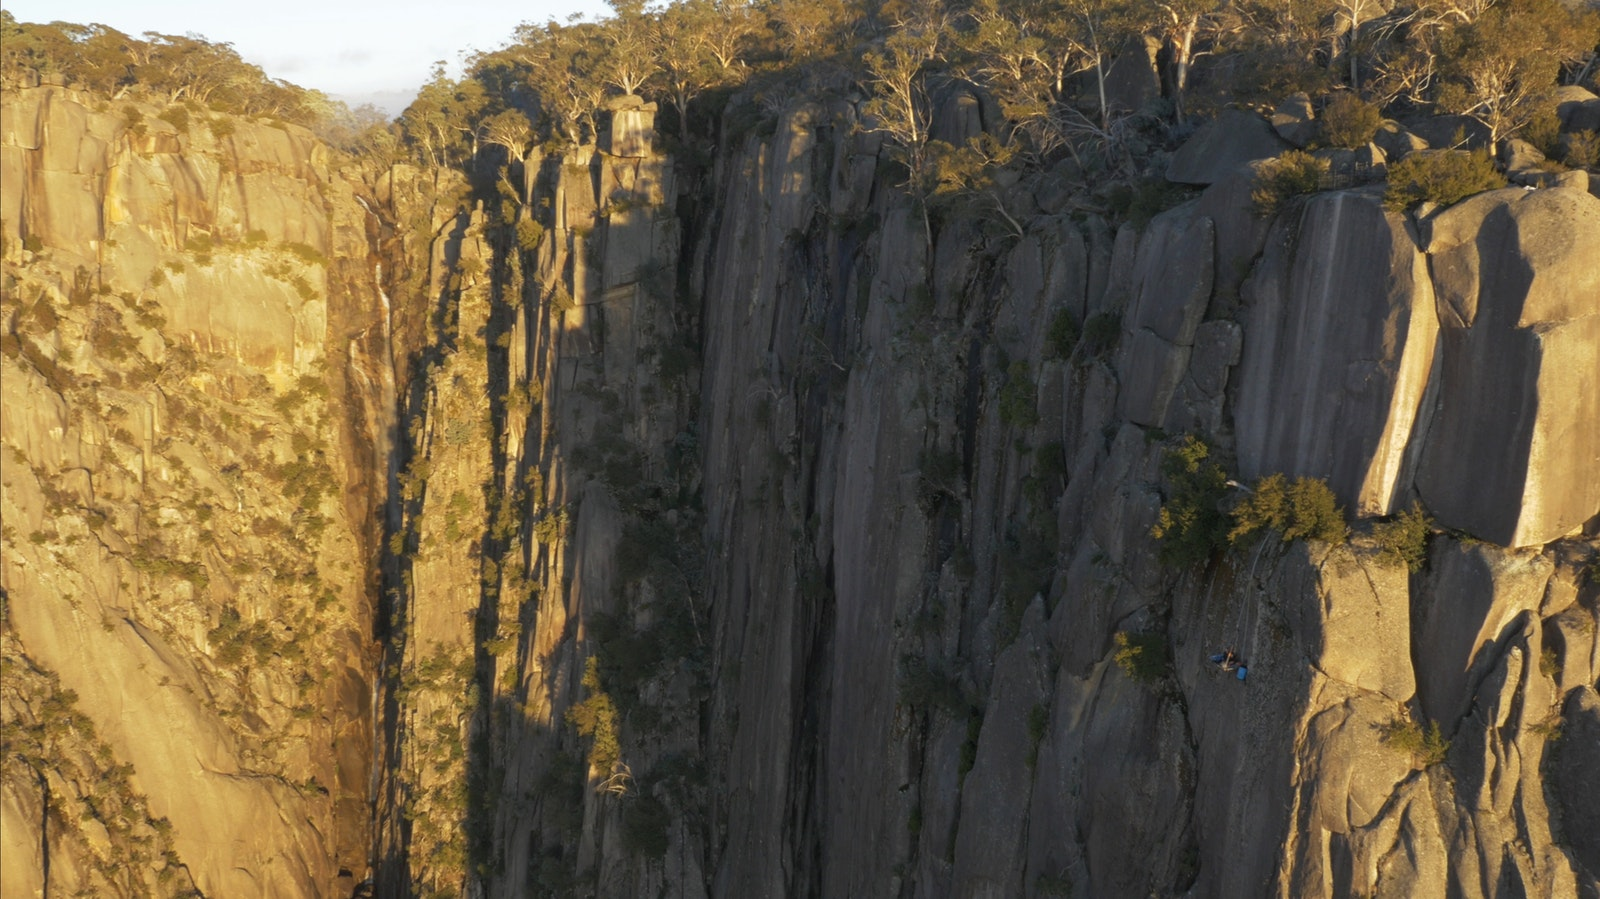 Unleashed-Unlimited Portaledge and Waterfall in Mt Buffalo Gorge